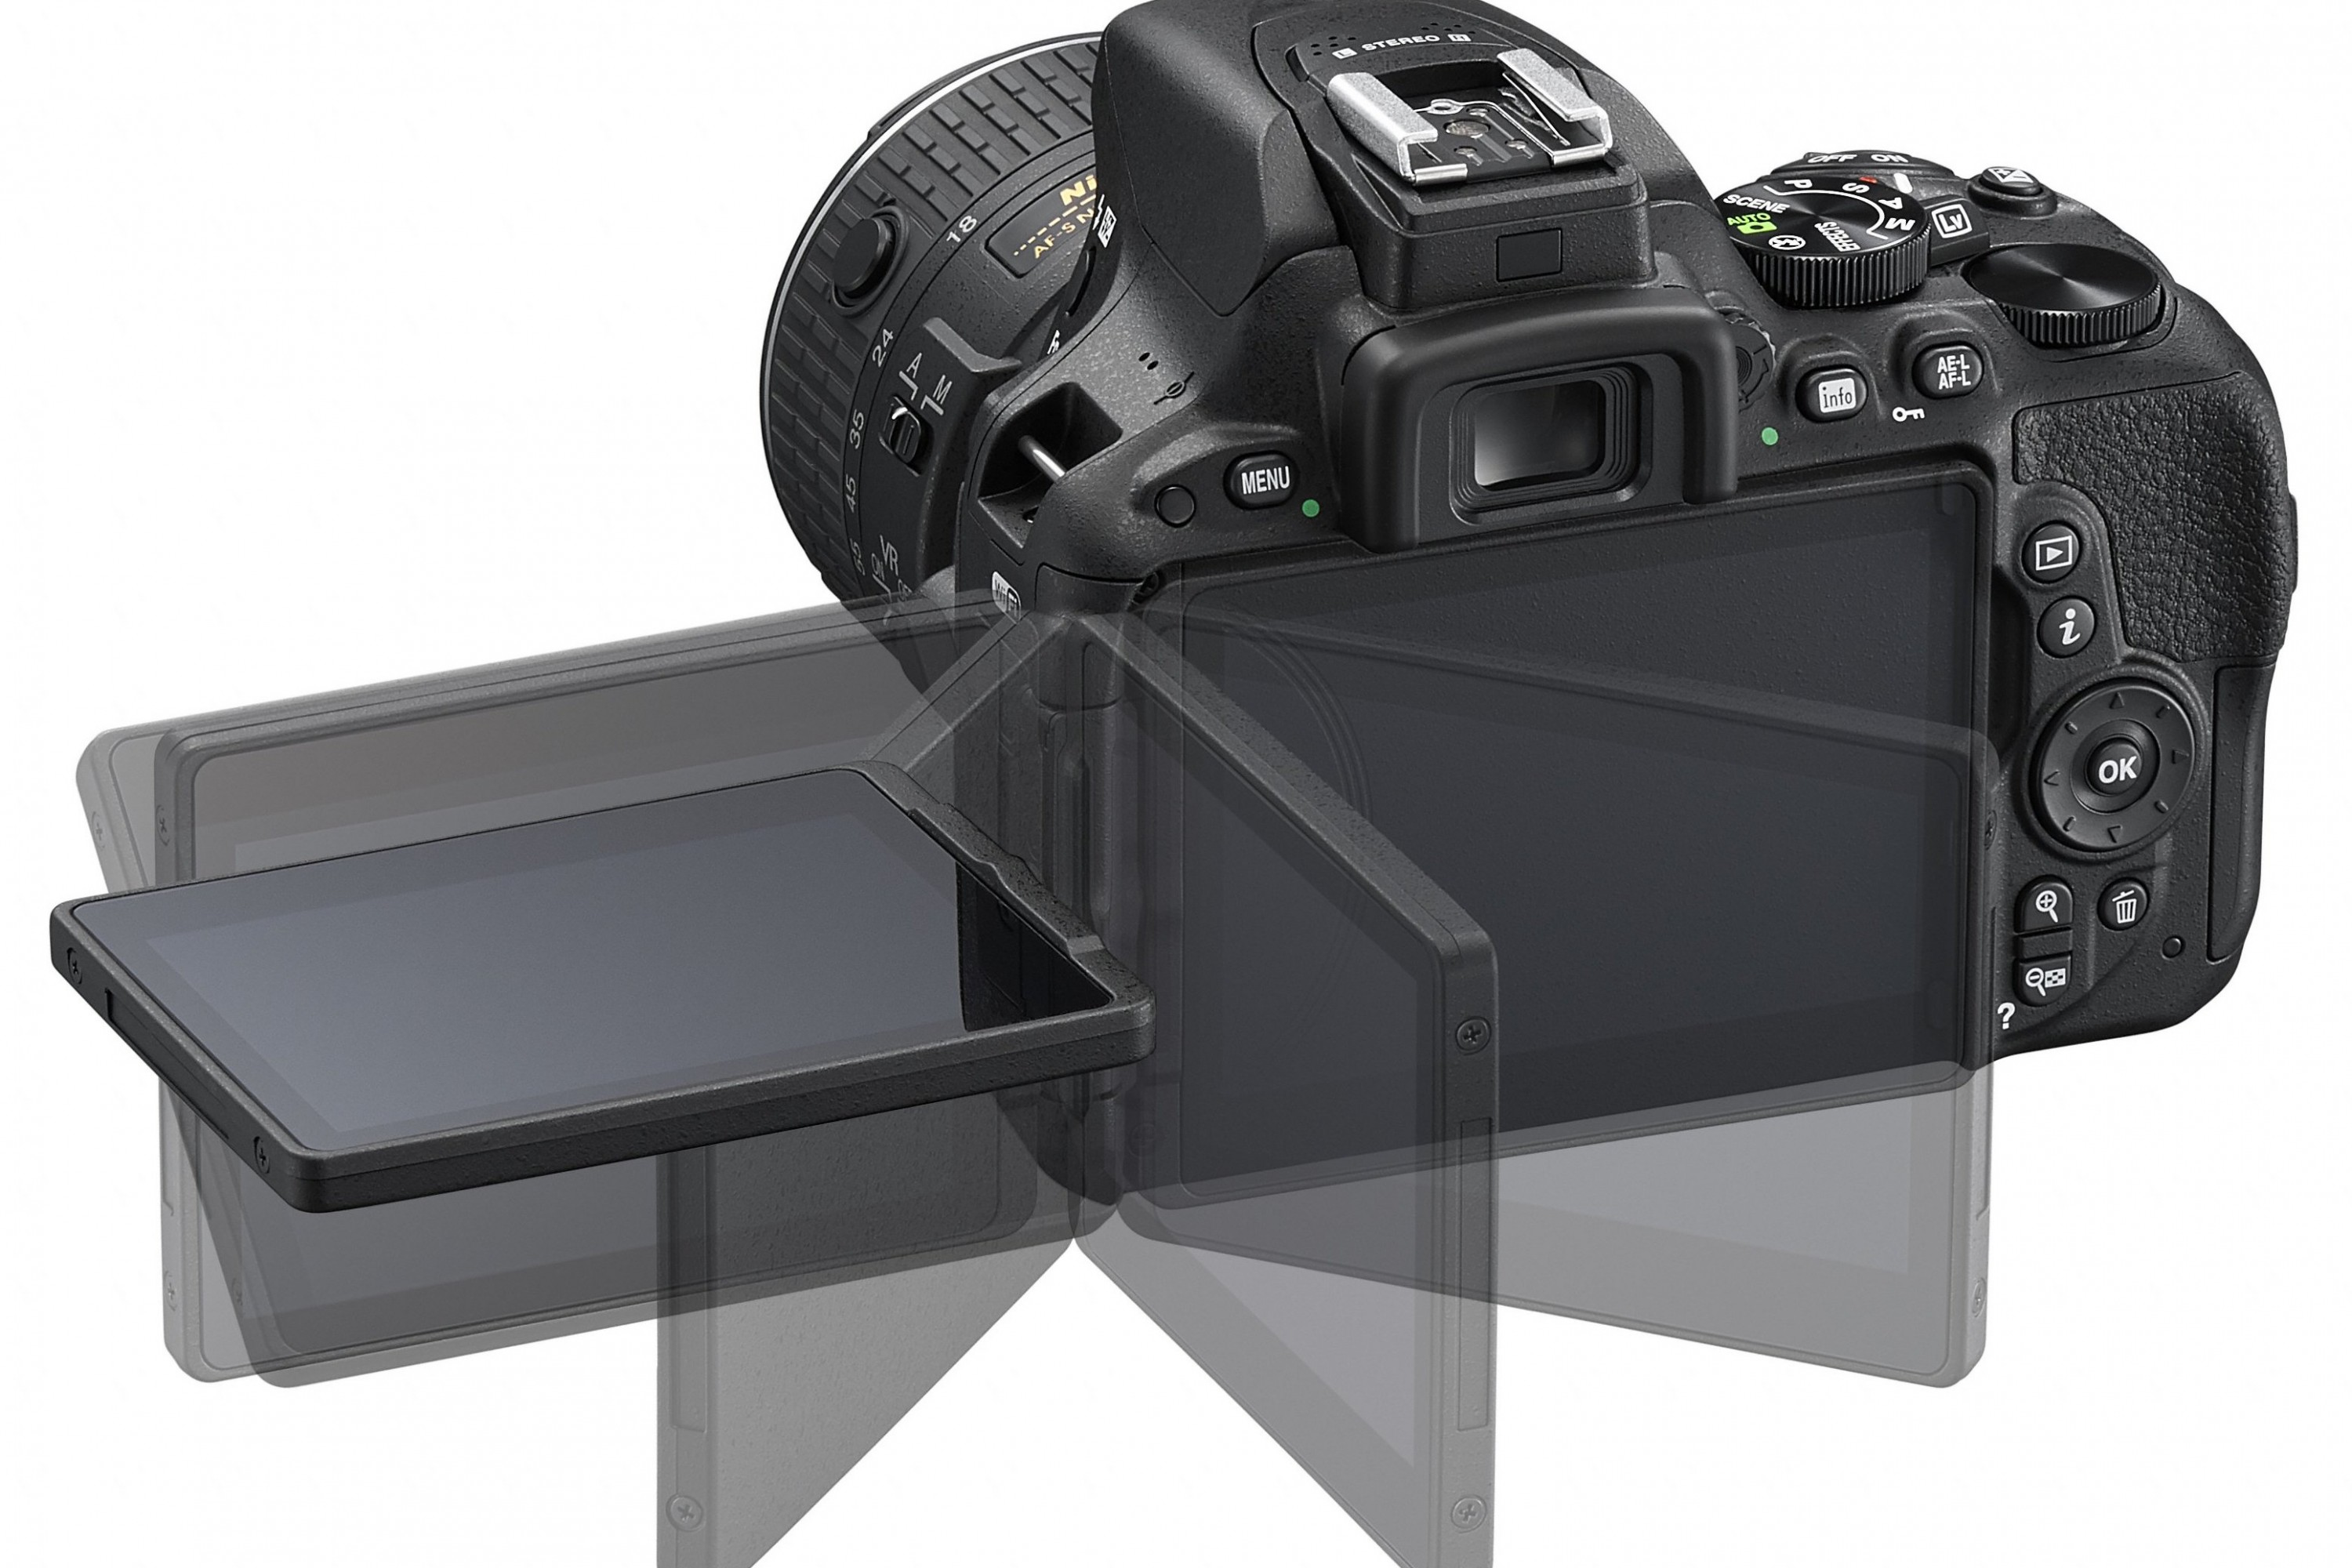 News Roundup: Nikon's First Touchscreen DSLR, Super High-Res Andromeda, and More